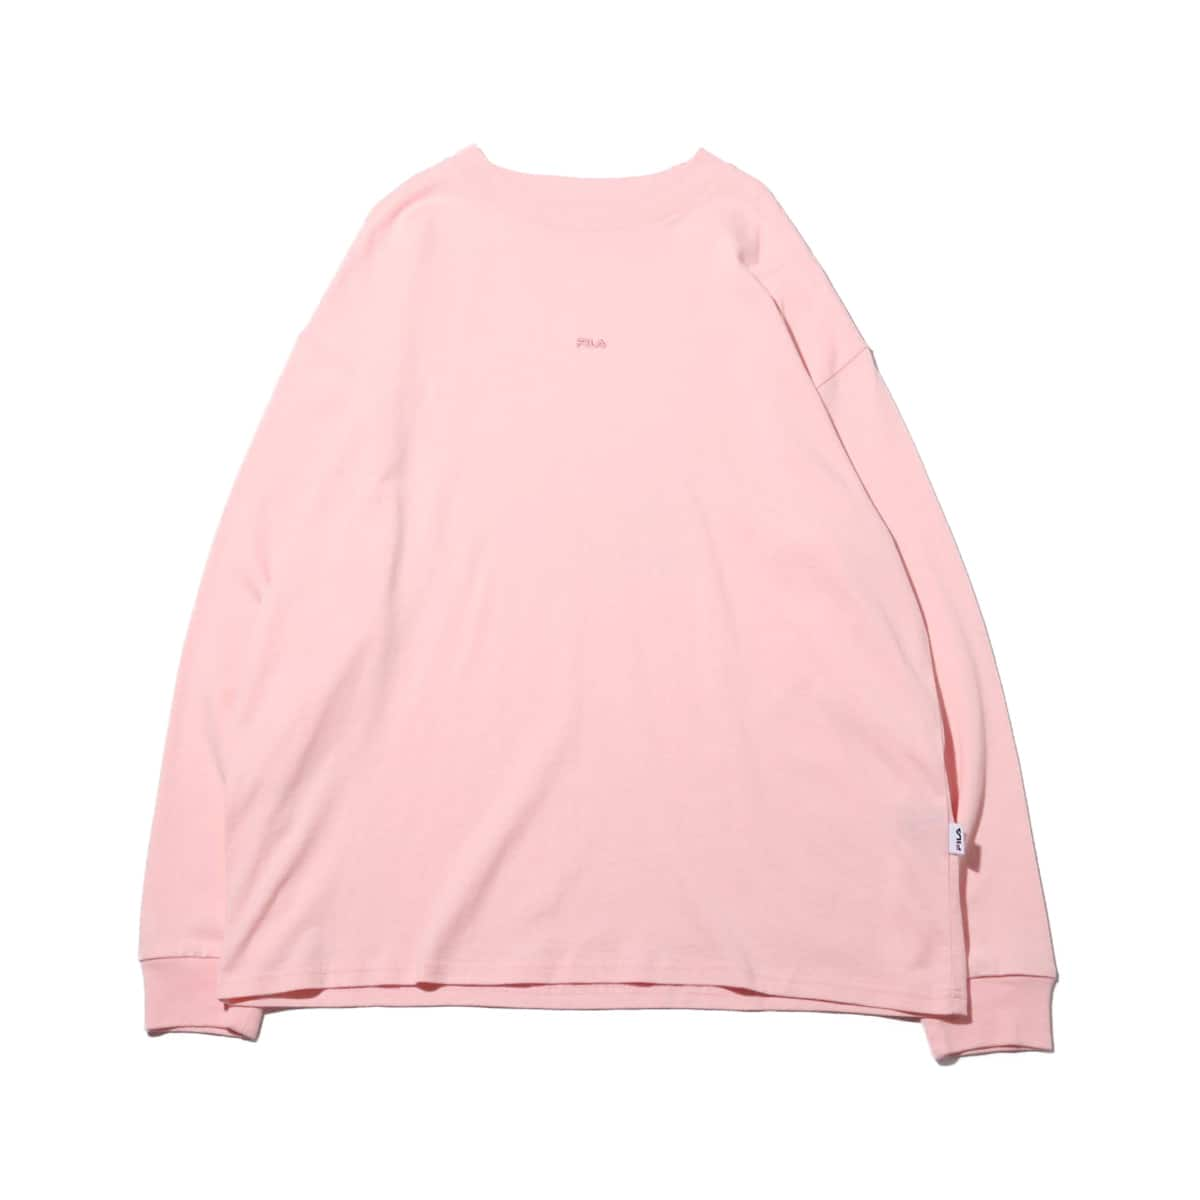 AMI × FILA × atmos pink LONG SLEEVE-T-SHIRT PINK 19FW-S_photo_large